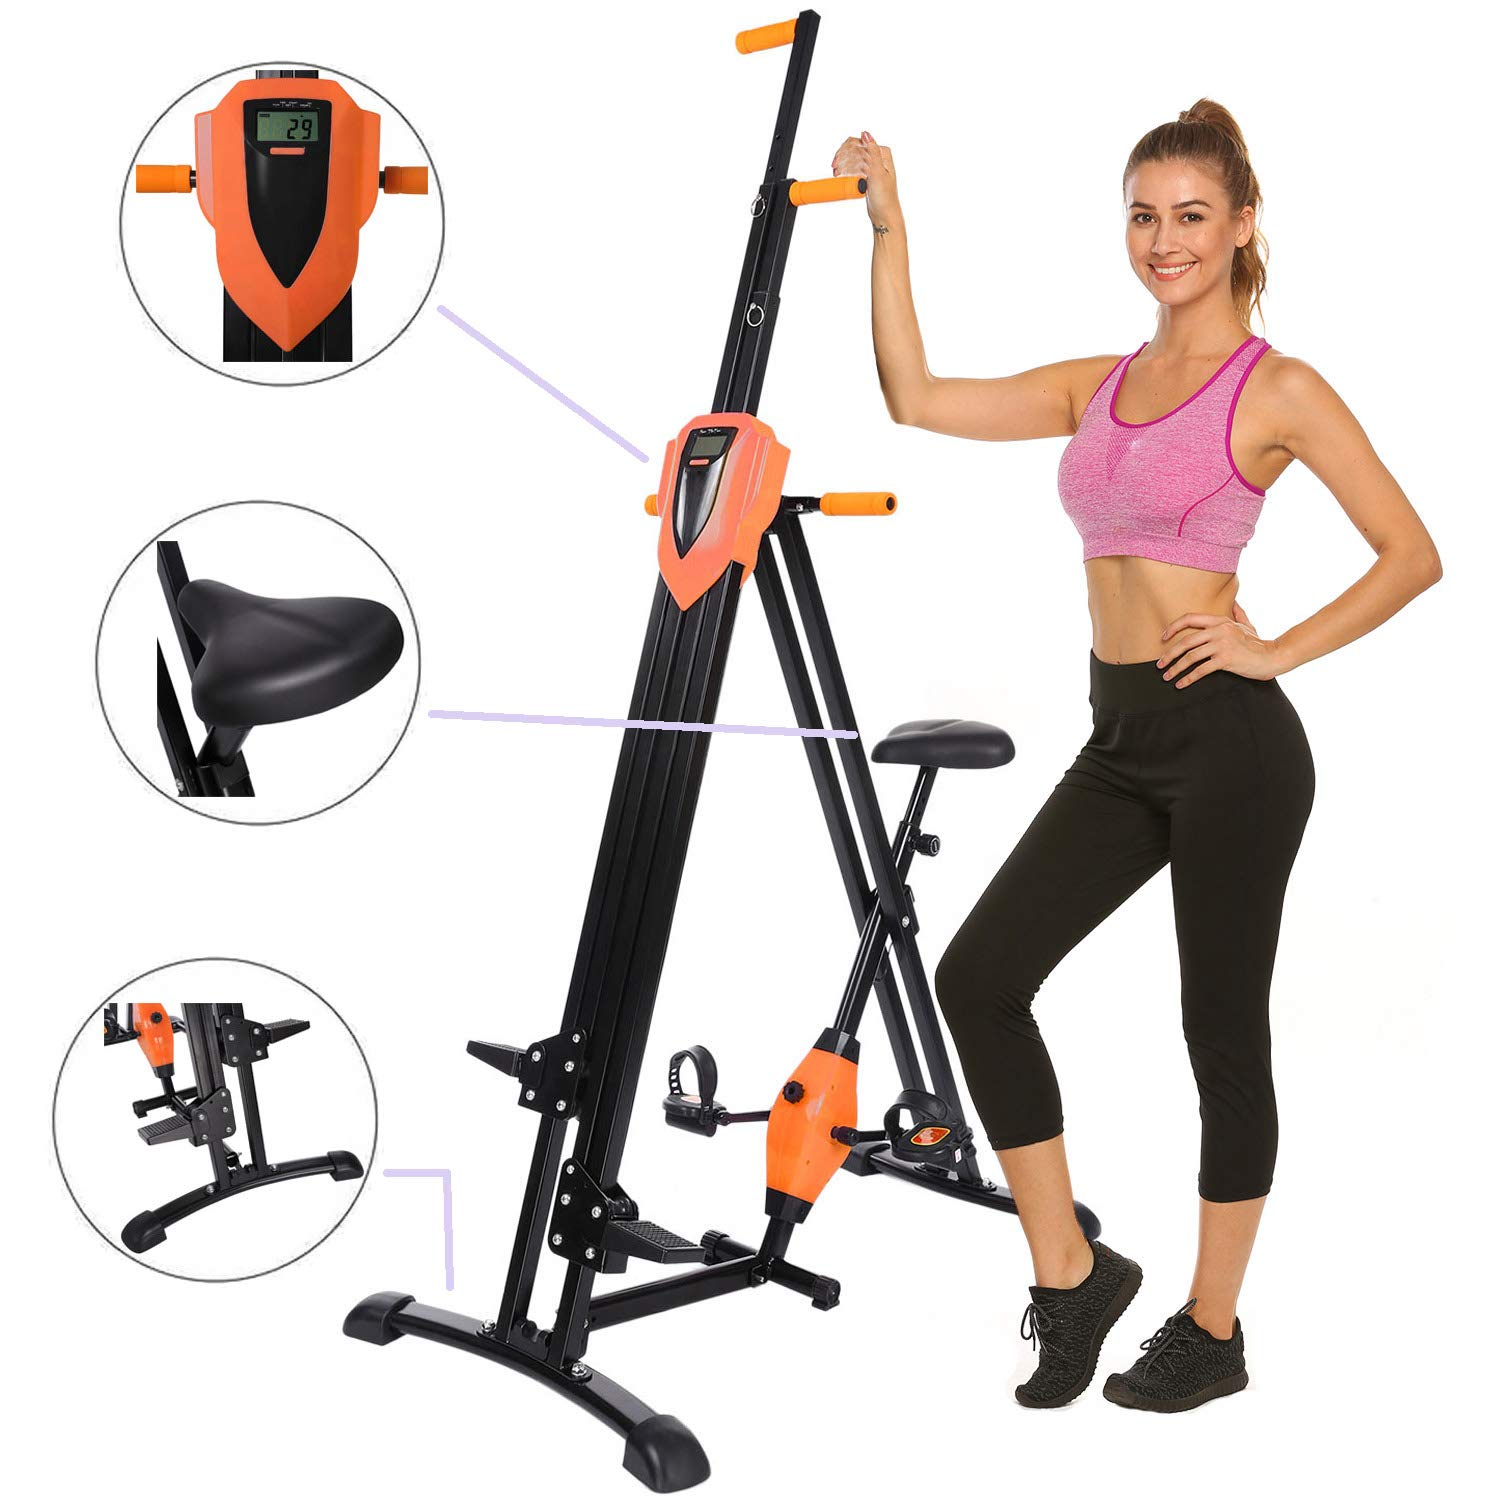 Hurbo Elliptical Exercise Machine, Top Levels Elliptical Machine Fitness Workout Cardio, Magnetic Smooth Quiet Driven Eliptical Trainer Machine with LCD Monitor and Pulse Rate Grips (Orange)